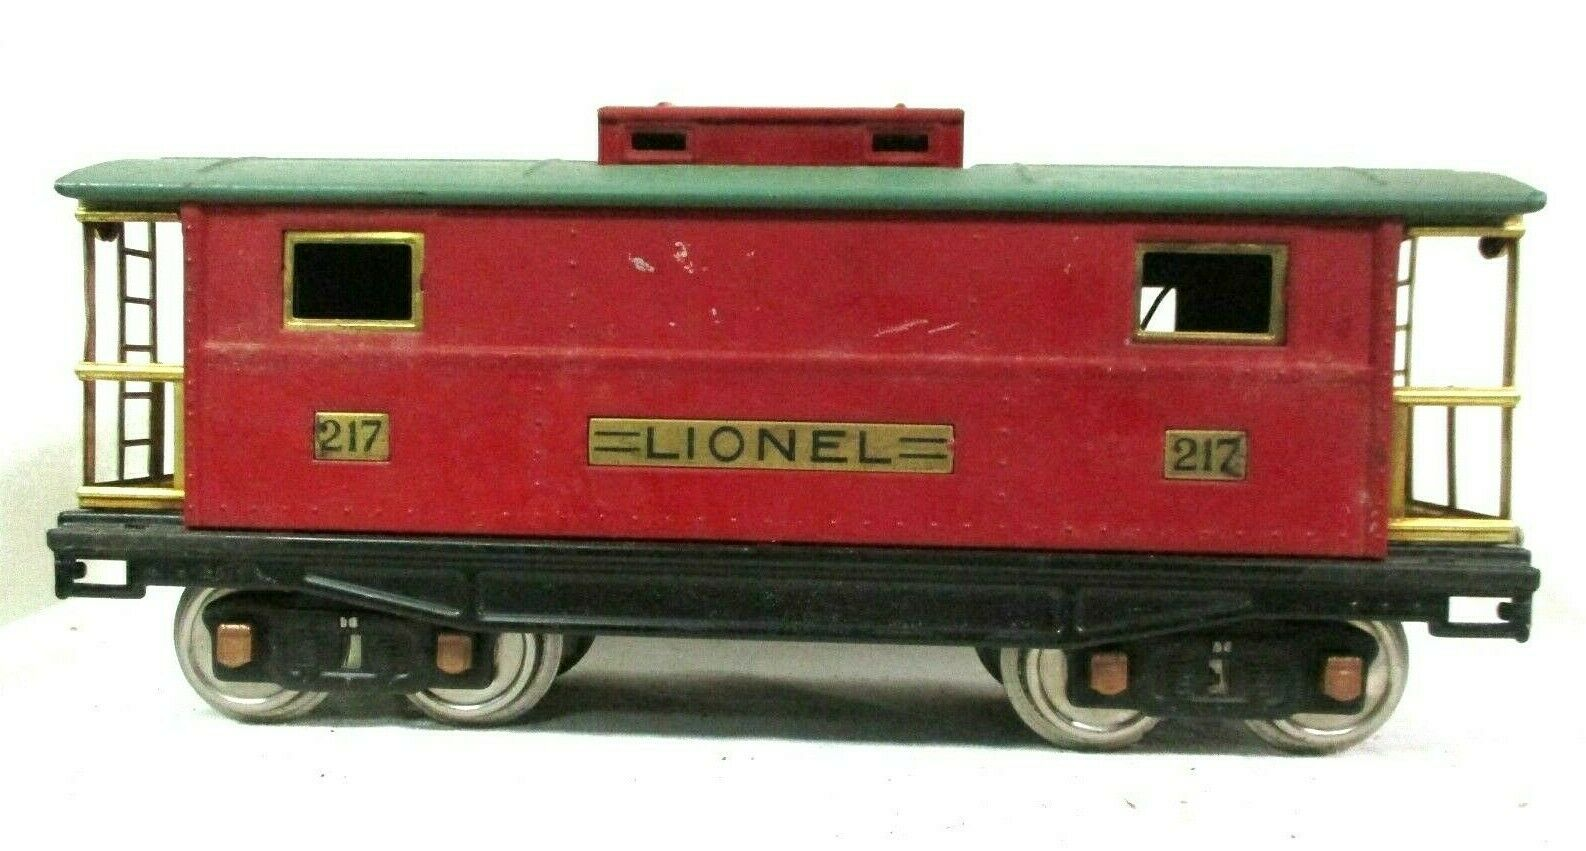 Lionel Red and Green Caboose Pre War Vintage Model Railway Train B55-1